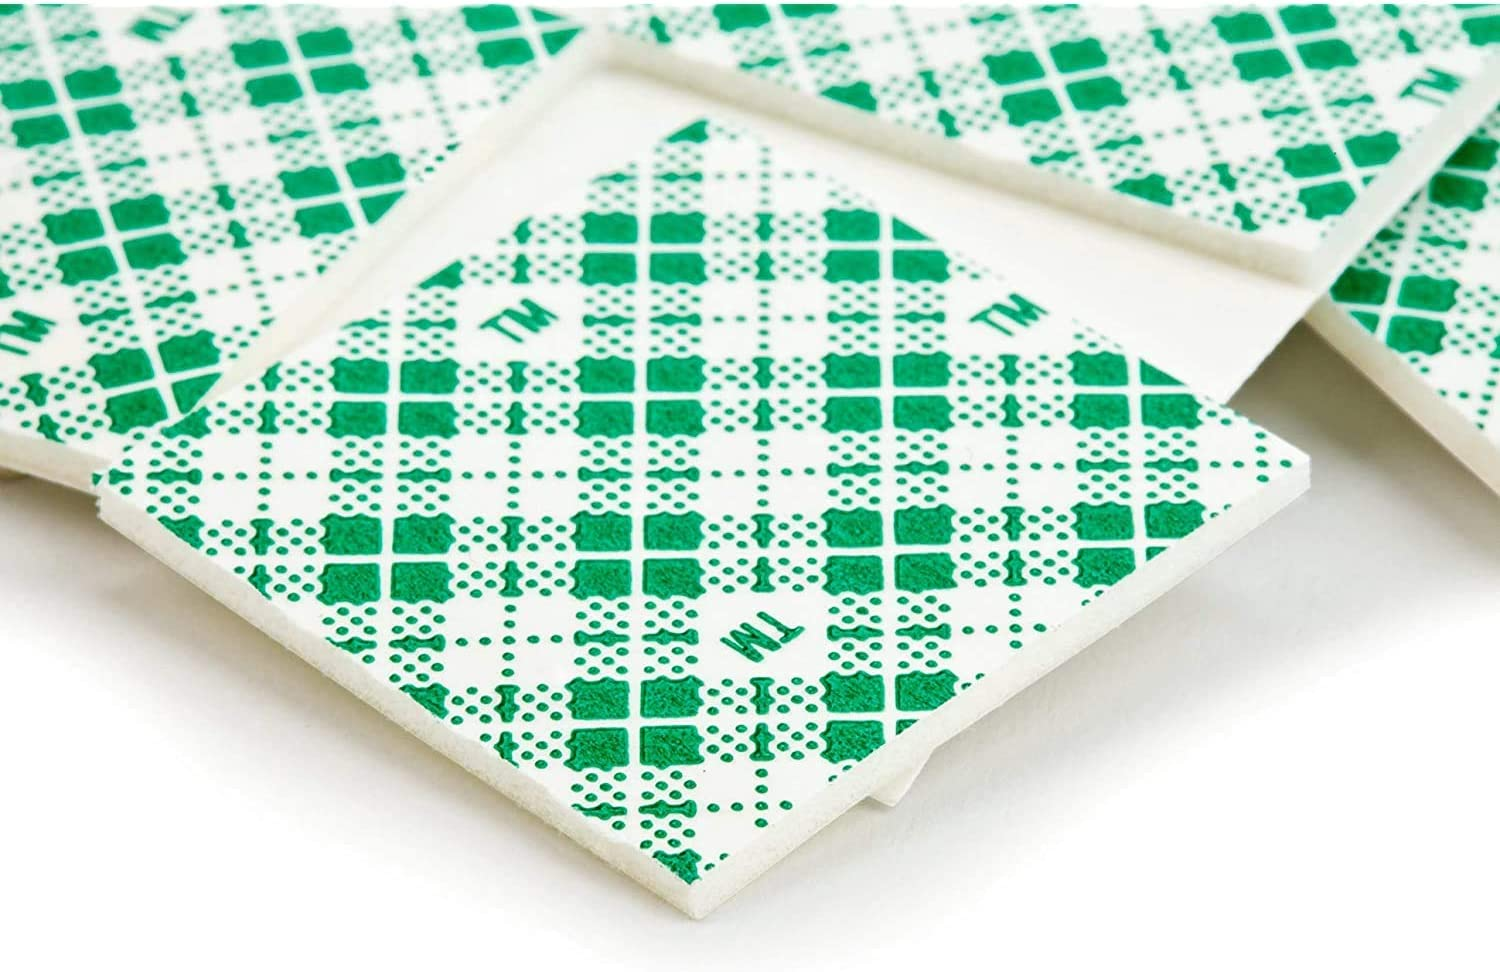 1x1 inch Holds up to 6 pounds Scotch Indoor Mounting Tape 48 Squares New